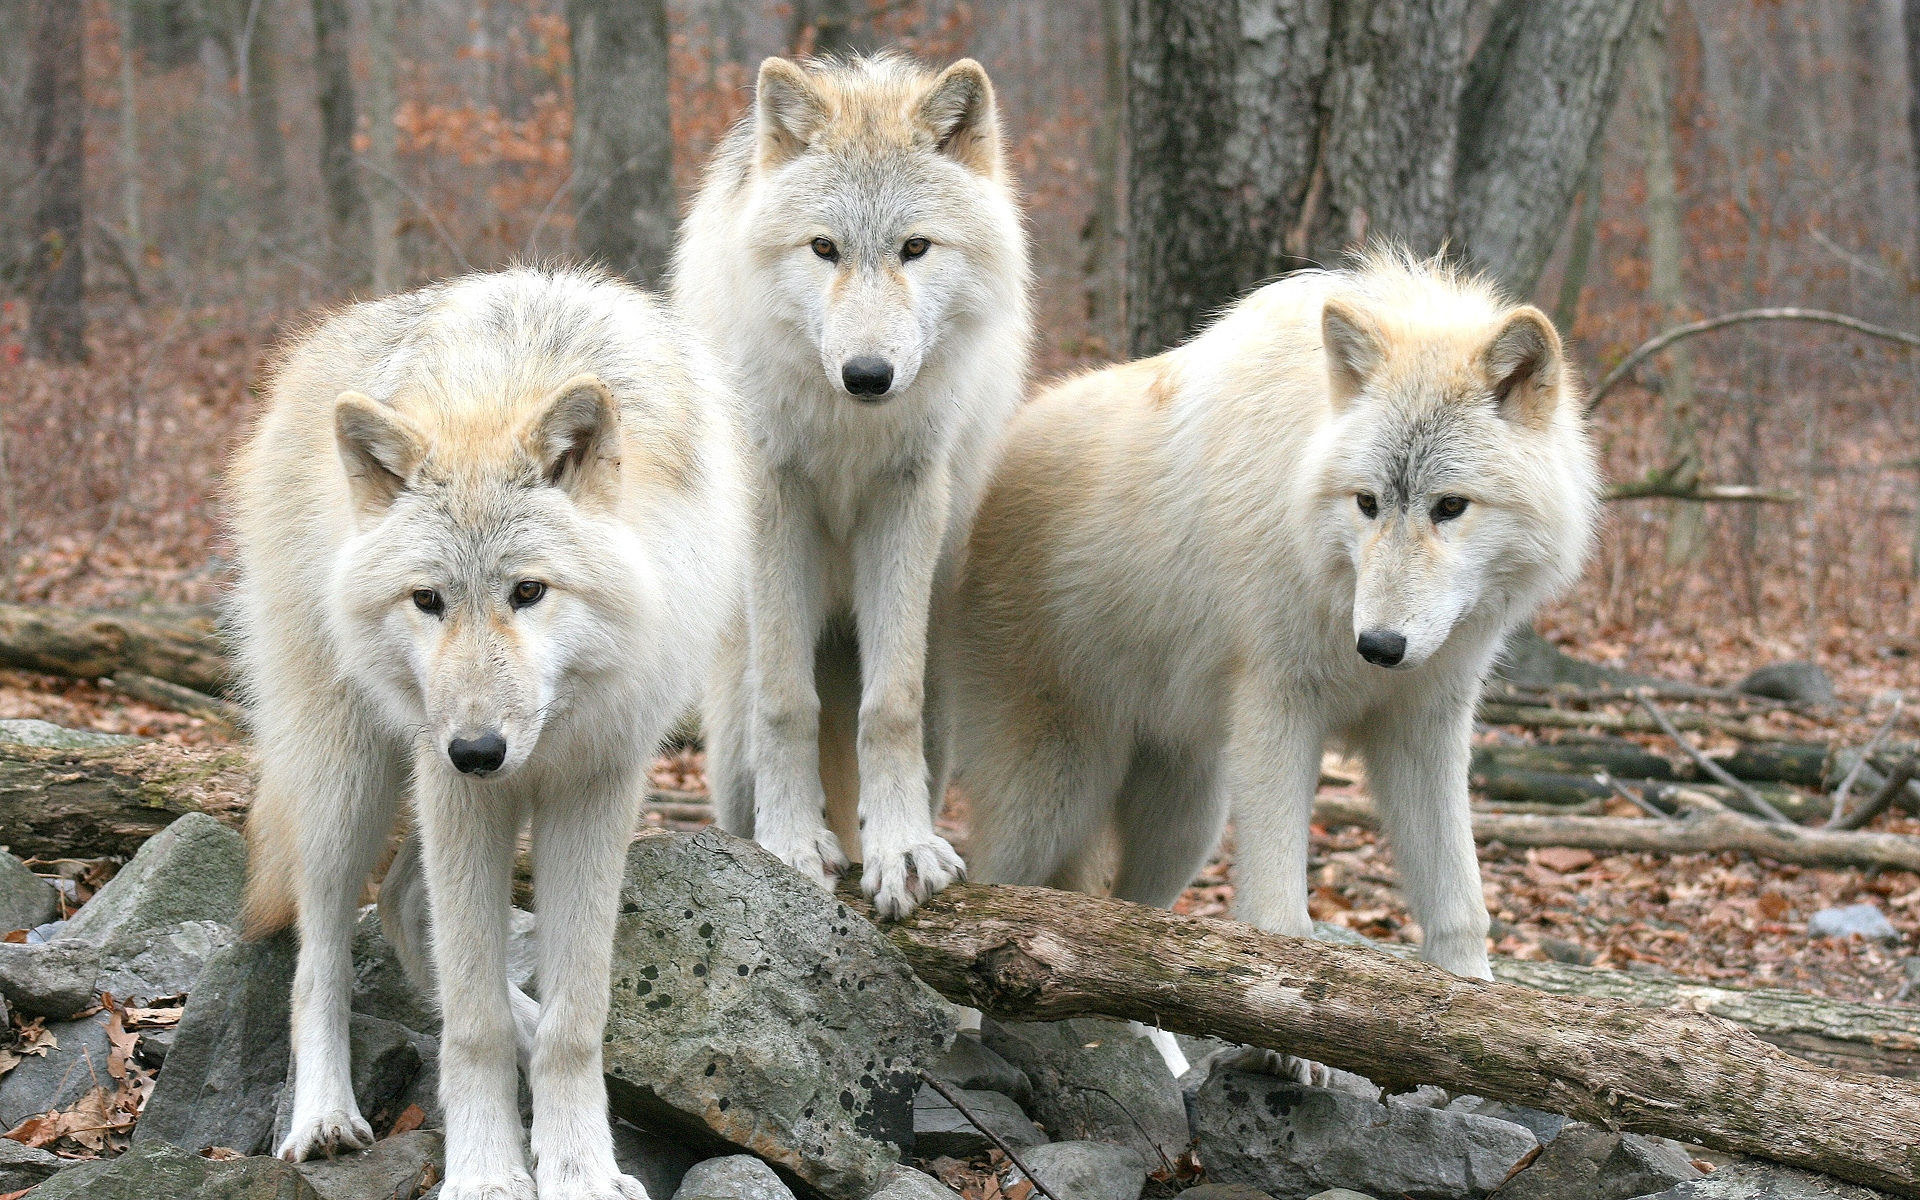 33388 download wallpaper Animals, Wolfs screensavers and pictures for free